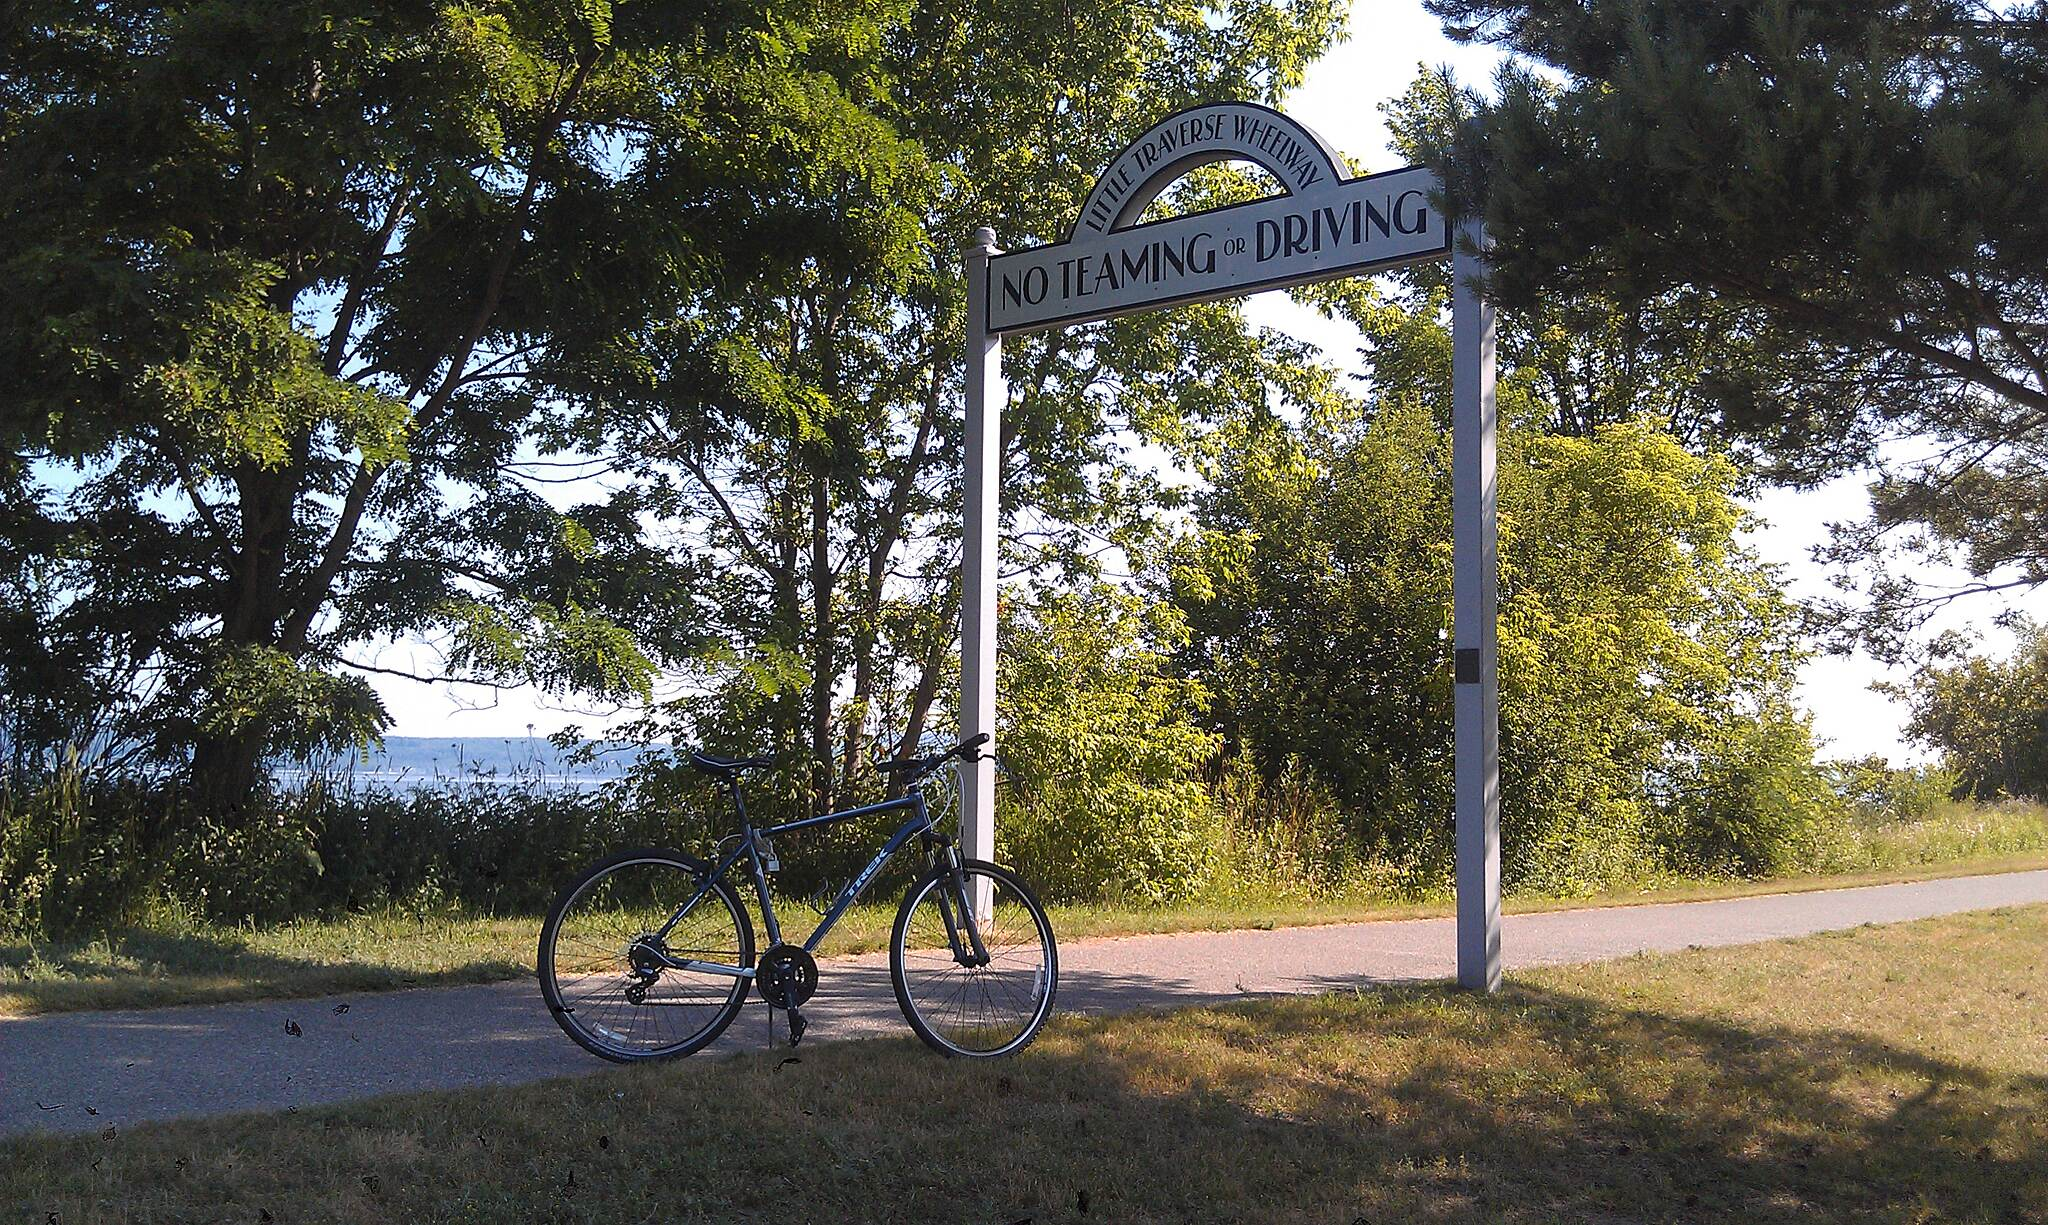 Little Traverse Wheelway Trail sign at Petoskey